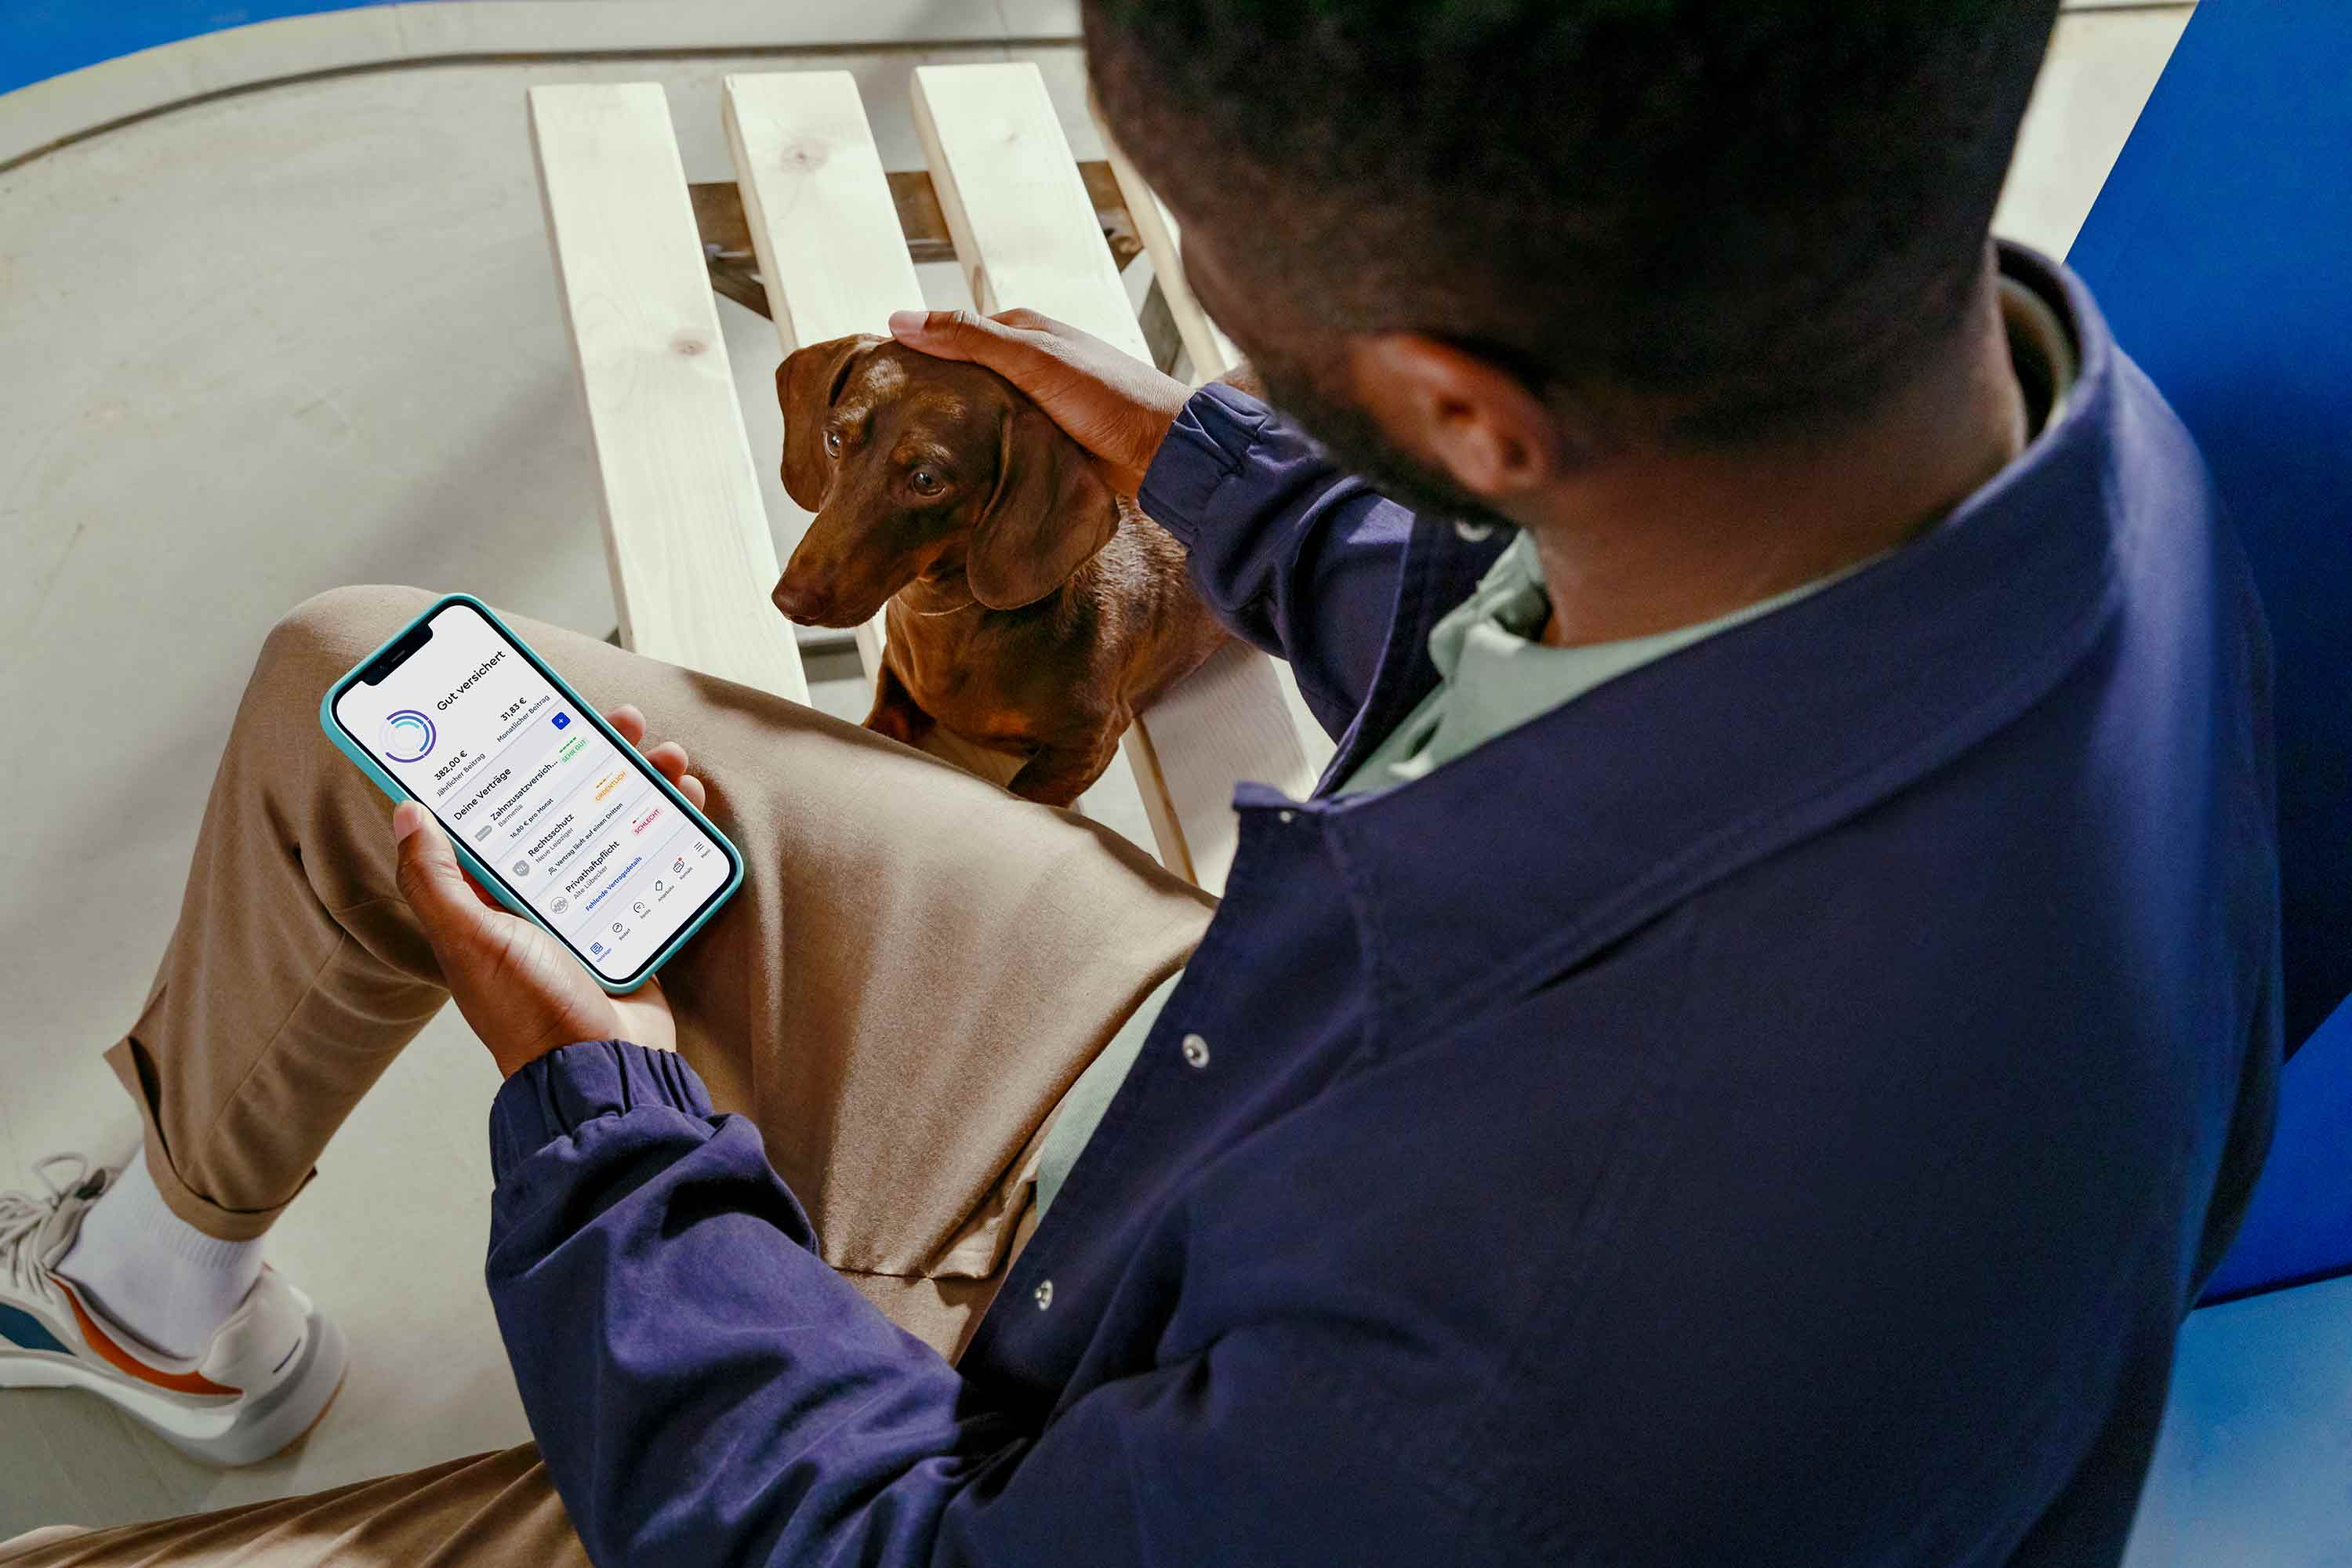 Image of a man holding a phone with a dog